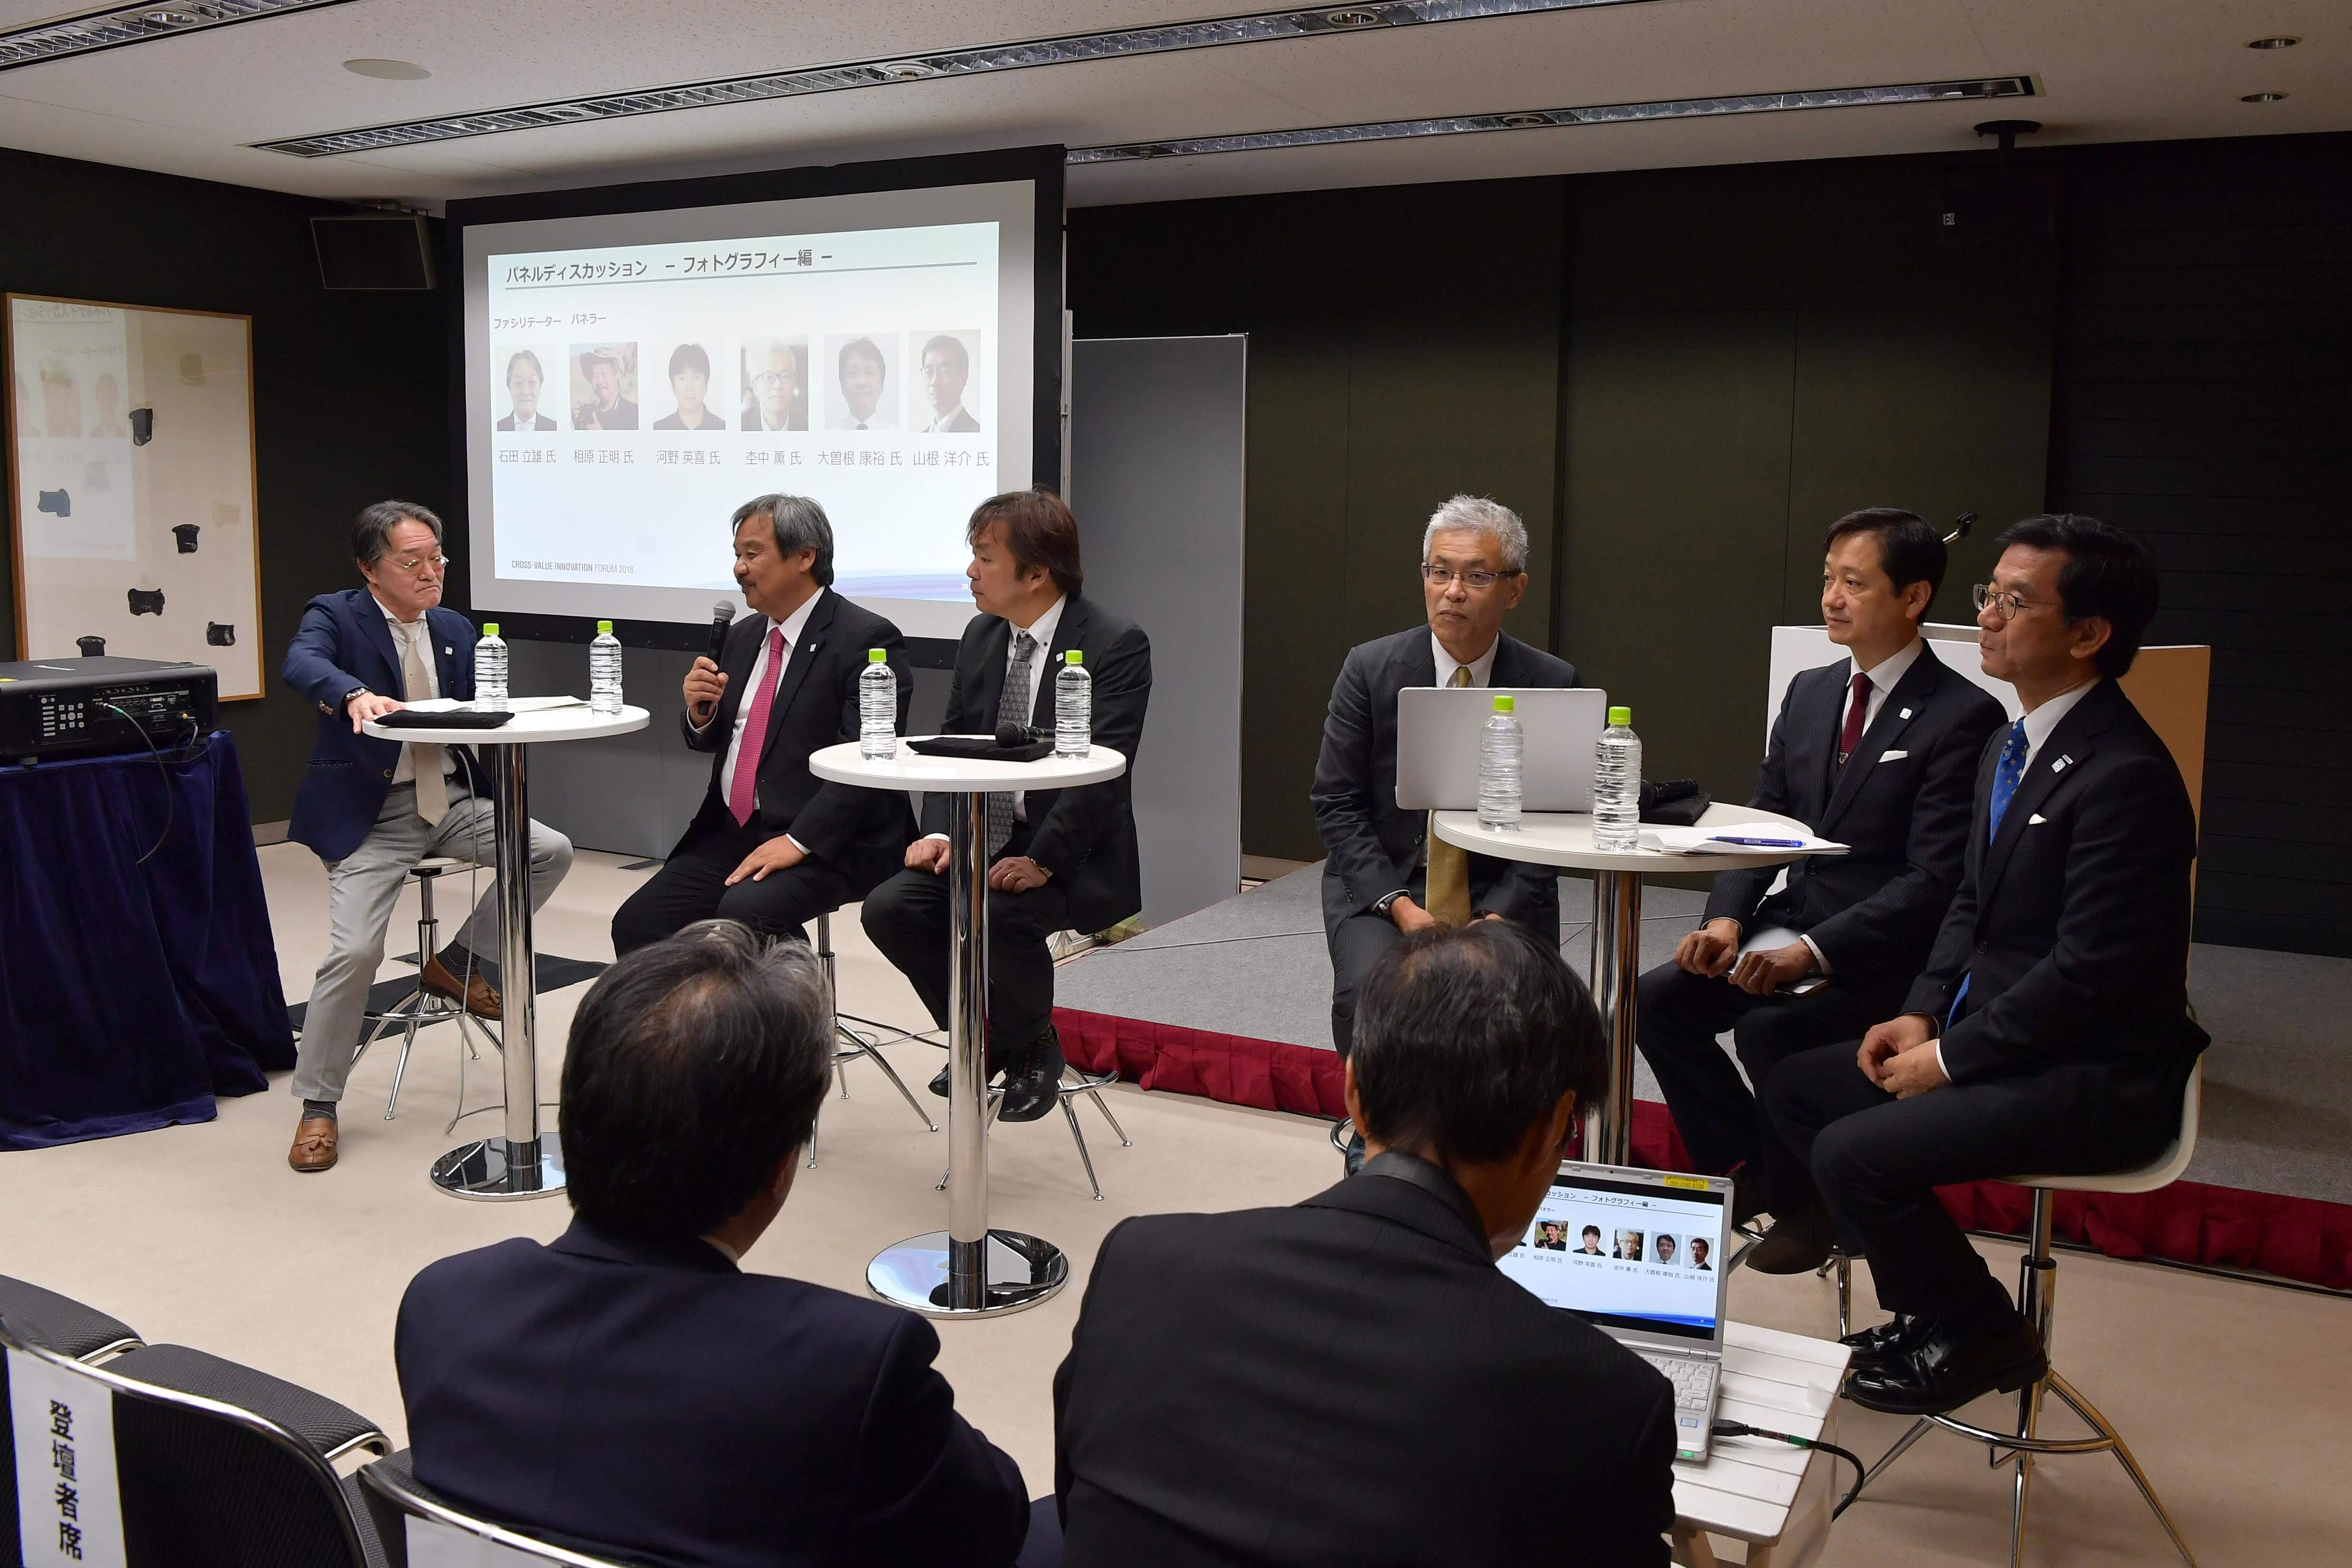 Seminar: Growth Strategy and Mirrorless Development of Imaging Business / イメージング事業の成長戦略と開発